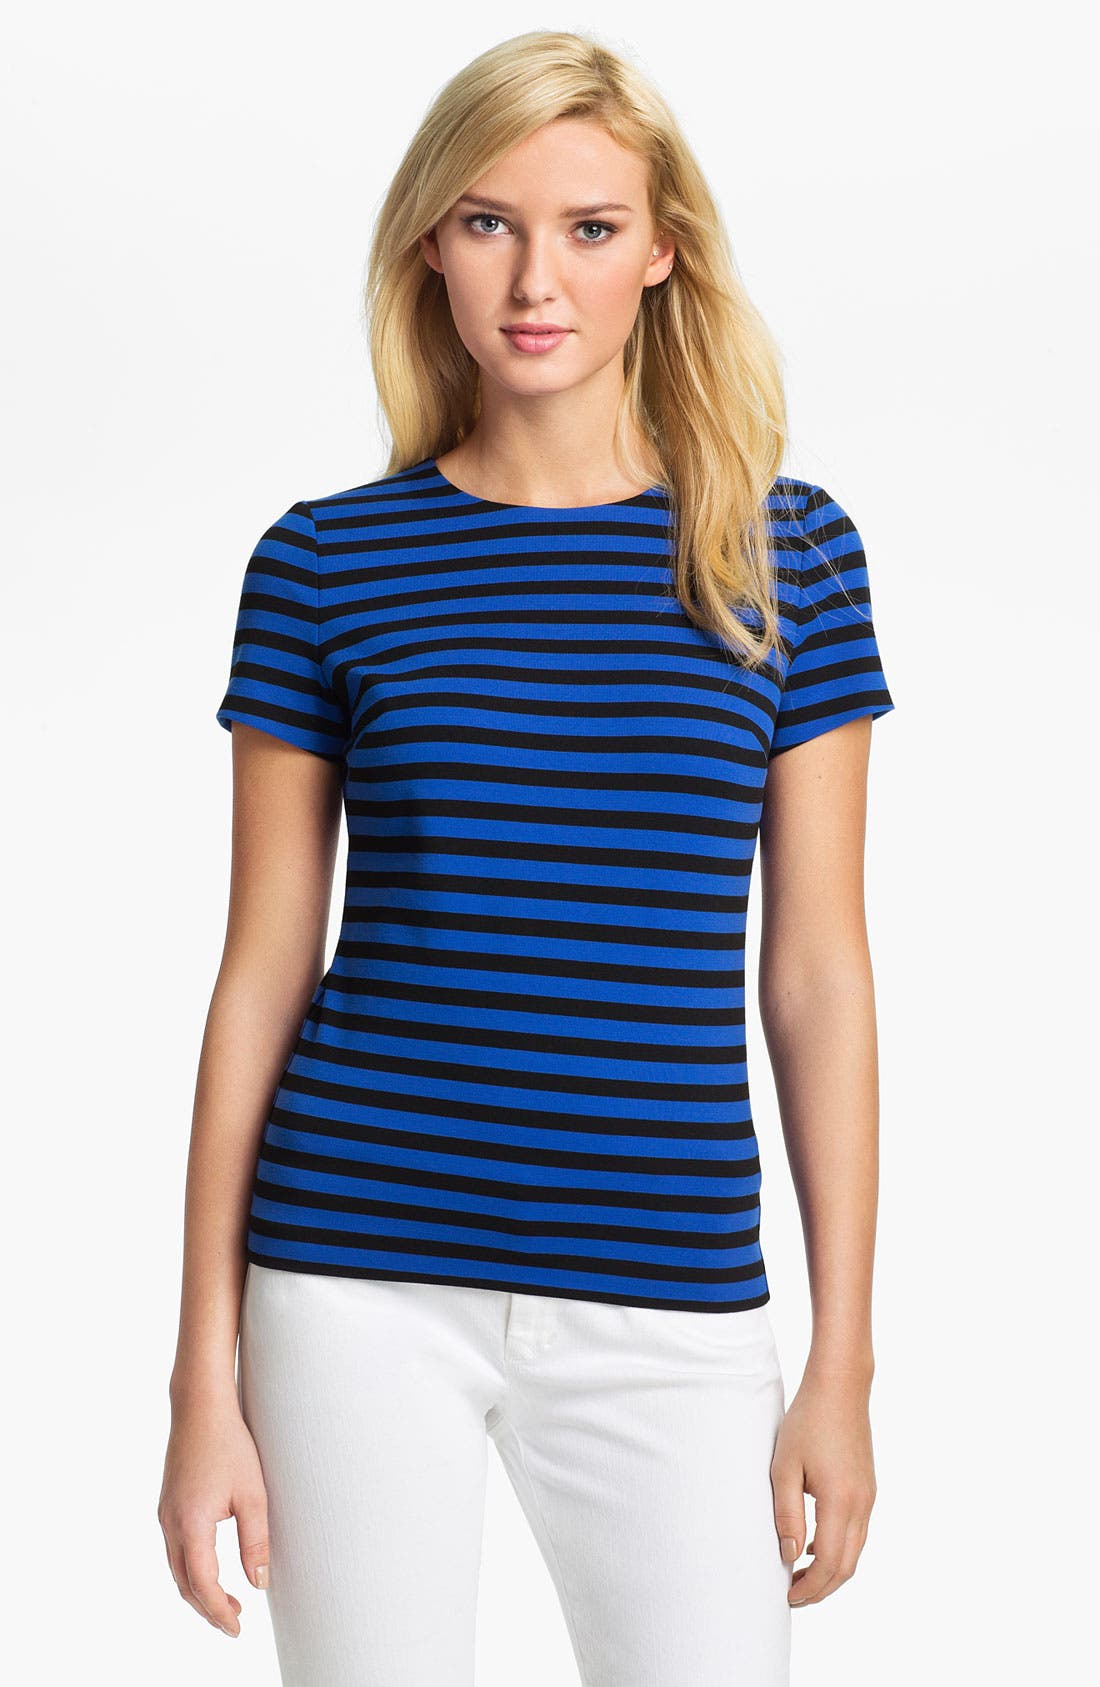 Alternate Image 1 Selected - MICHAEL Michael Kors Short Sleeve Stripe Top